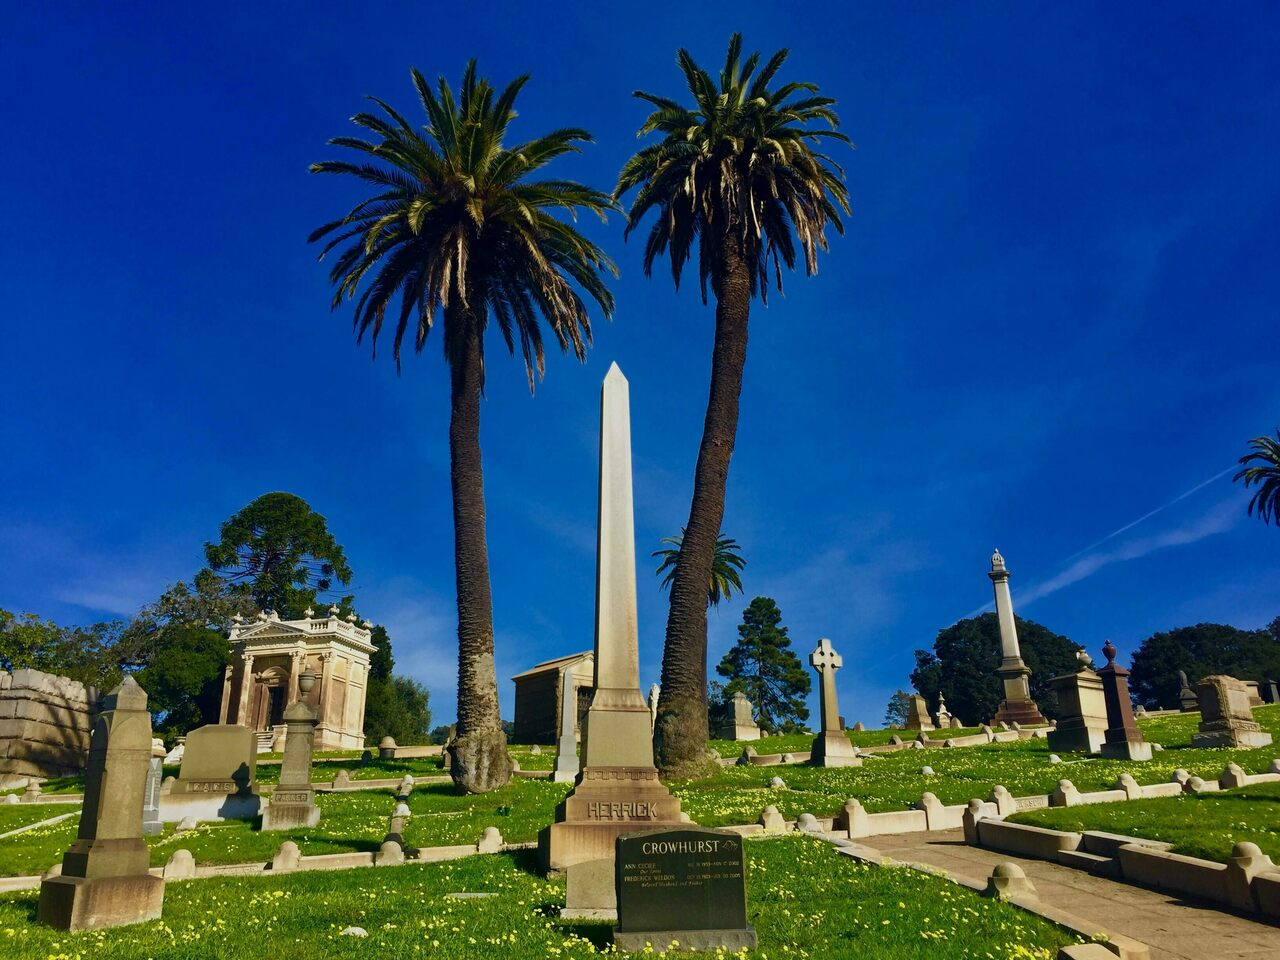 Clara Loeper's remains were buried at—and stolen from—Mountain View Cemetery in Oakland, California.